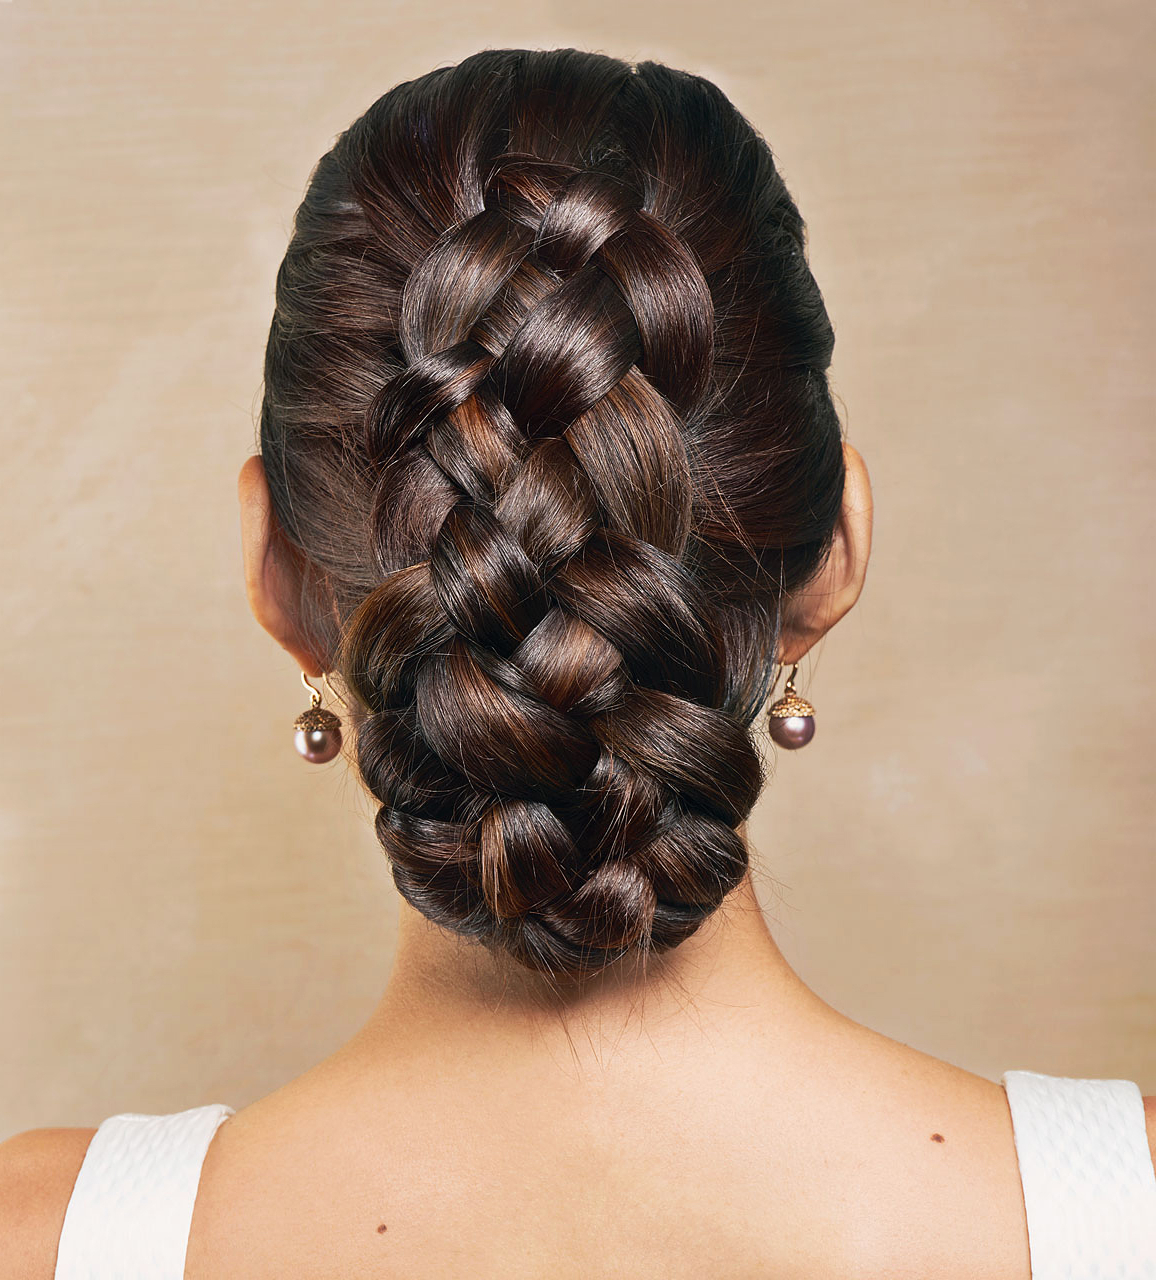 15 Fresh And Fabulous Wedding Hairstyles You Can Diy Intended For Famous Thick Wheel Pattern Braided Hairstyles (View 11 of 20)